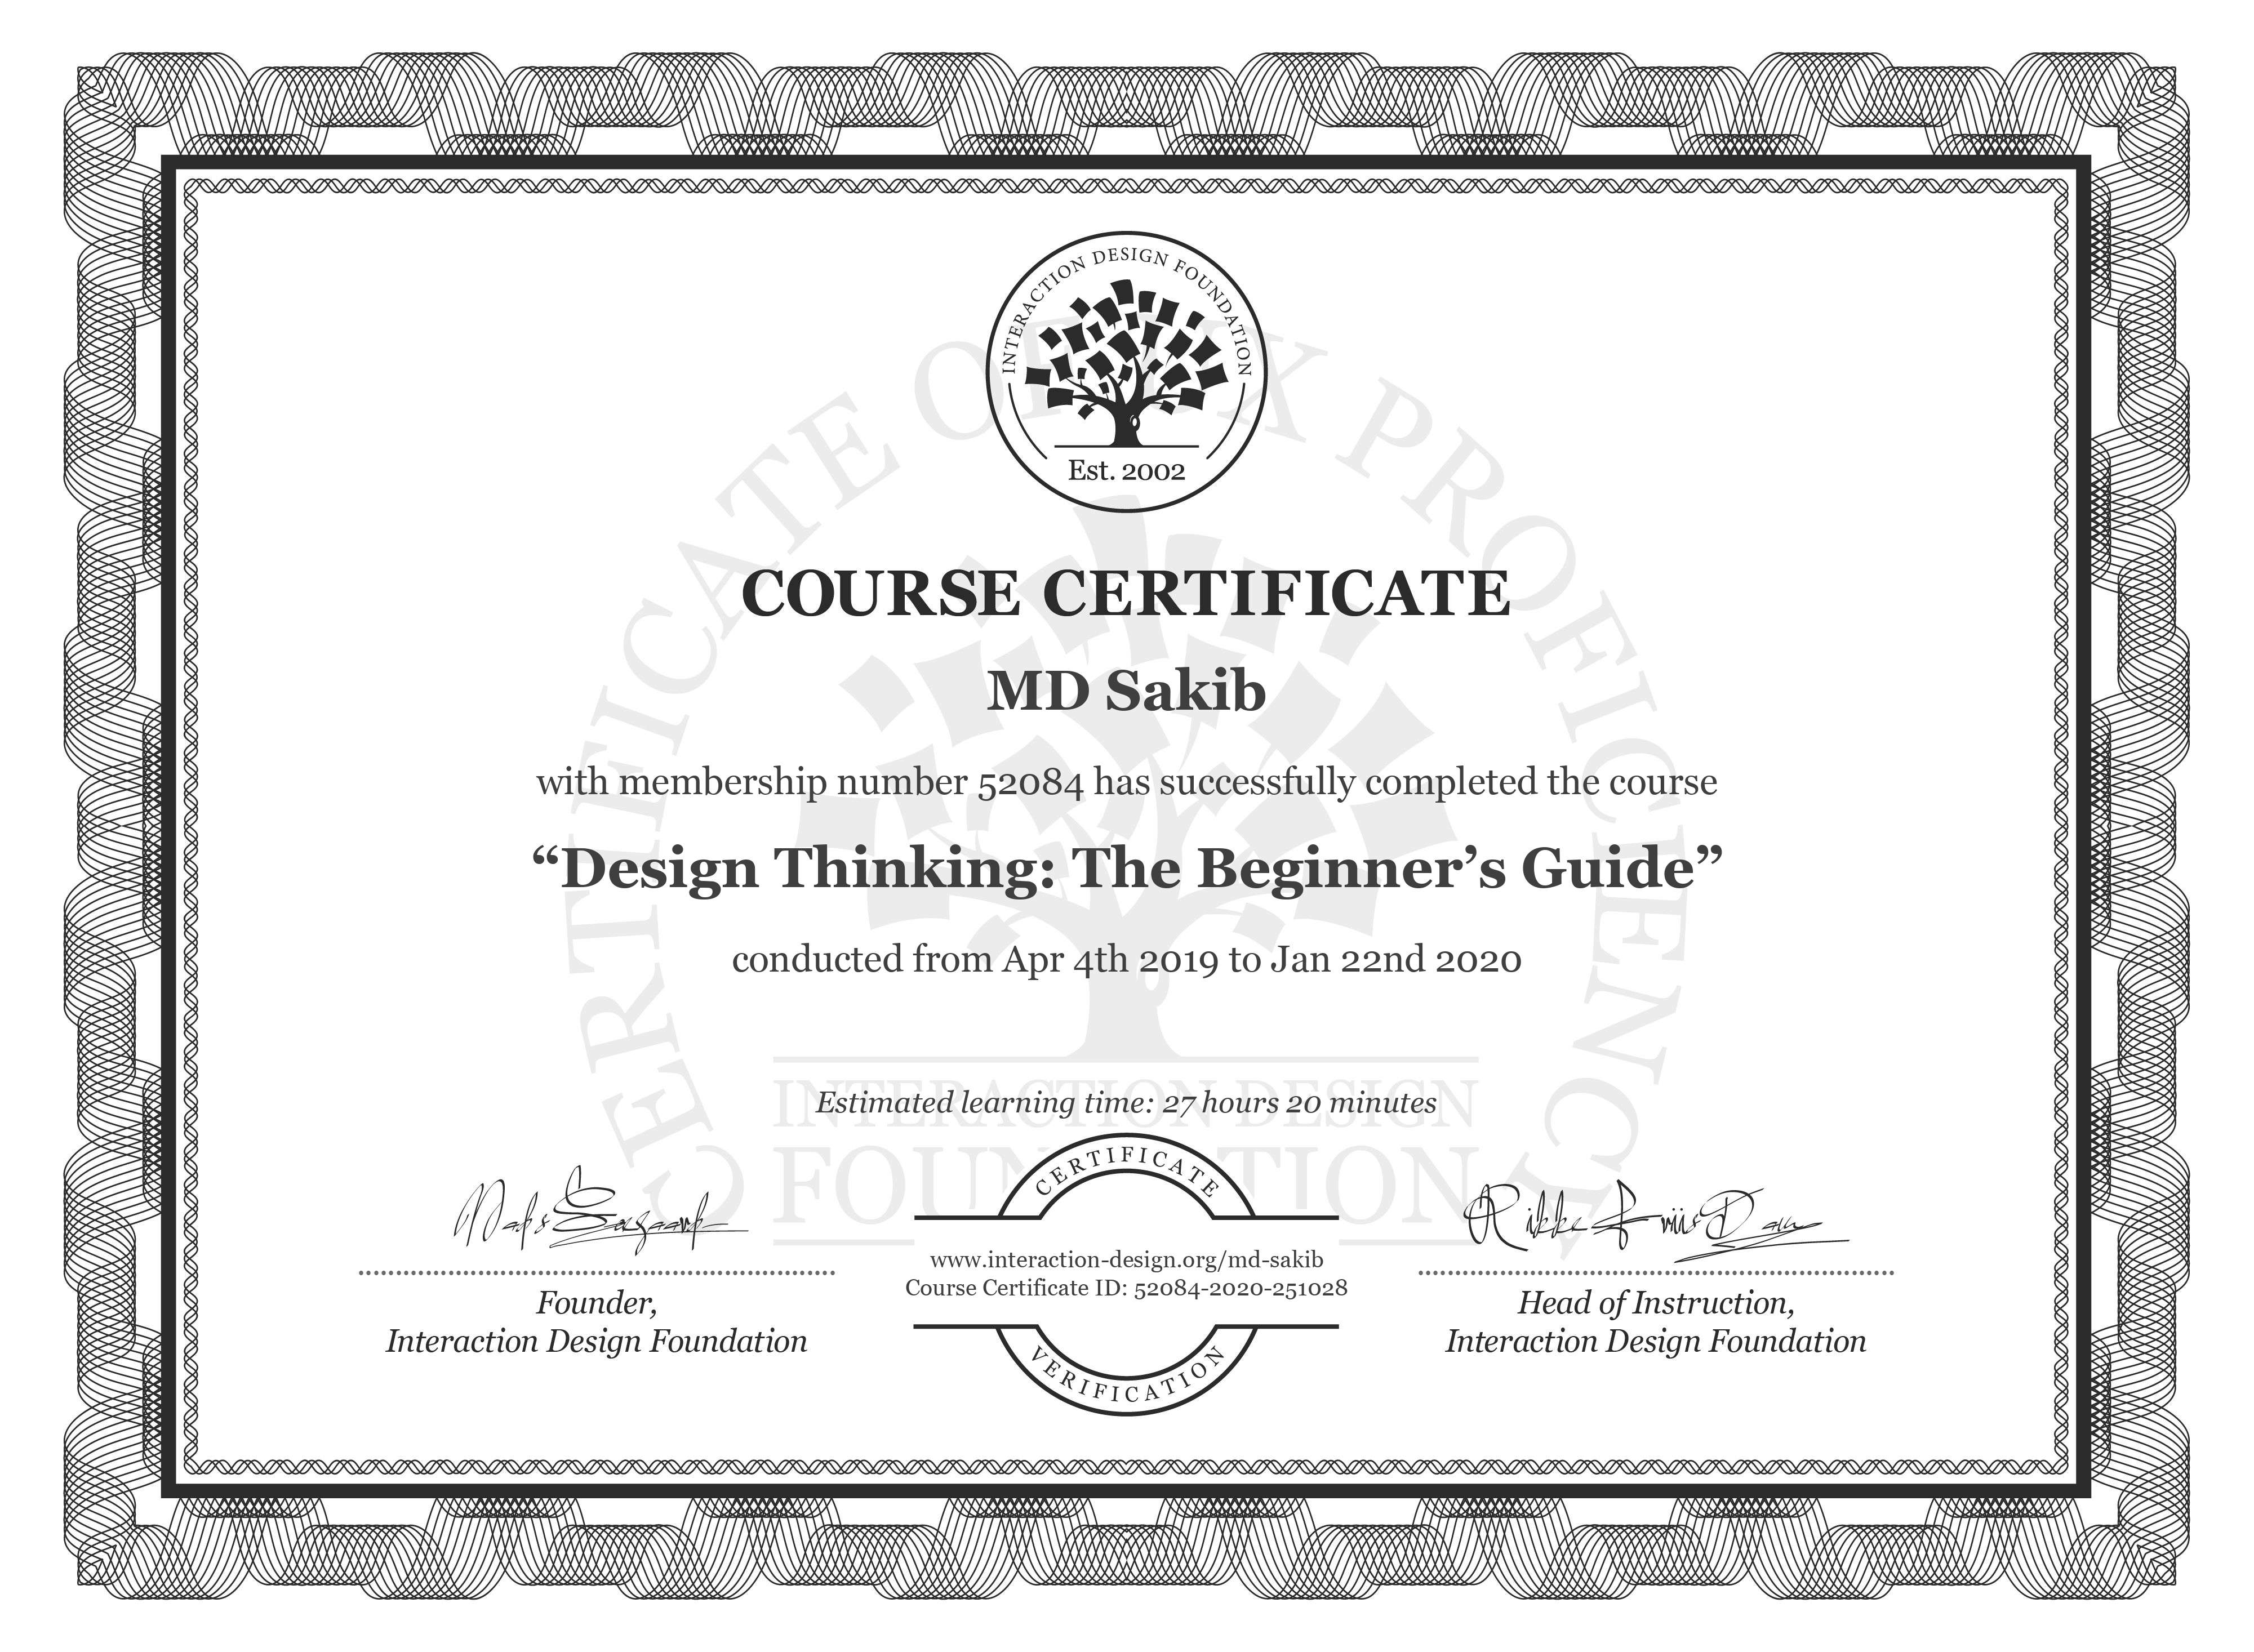 MD Sakib's Course Certificate: Design Thinking: The Beginner's Guide